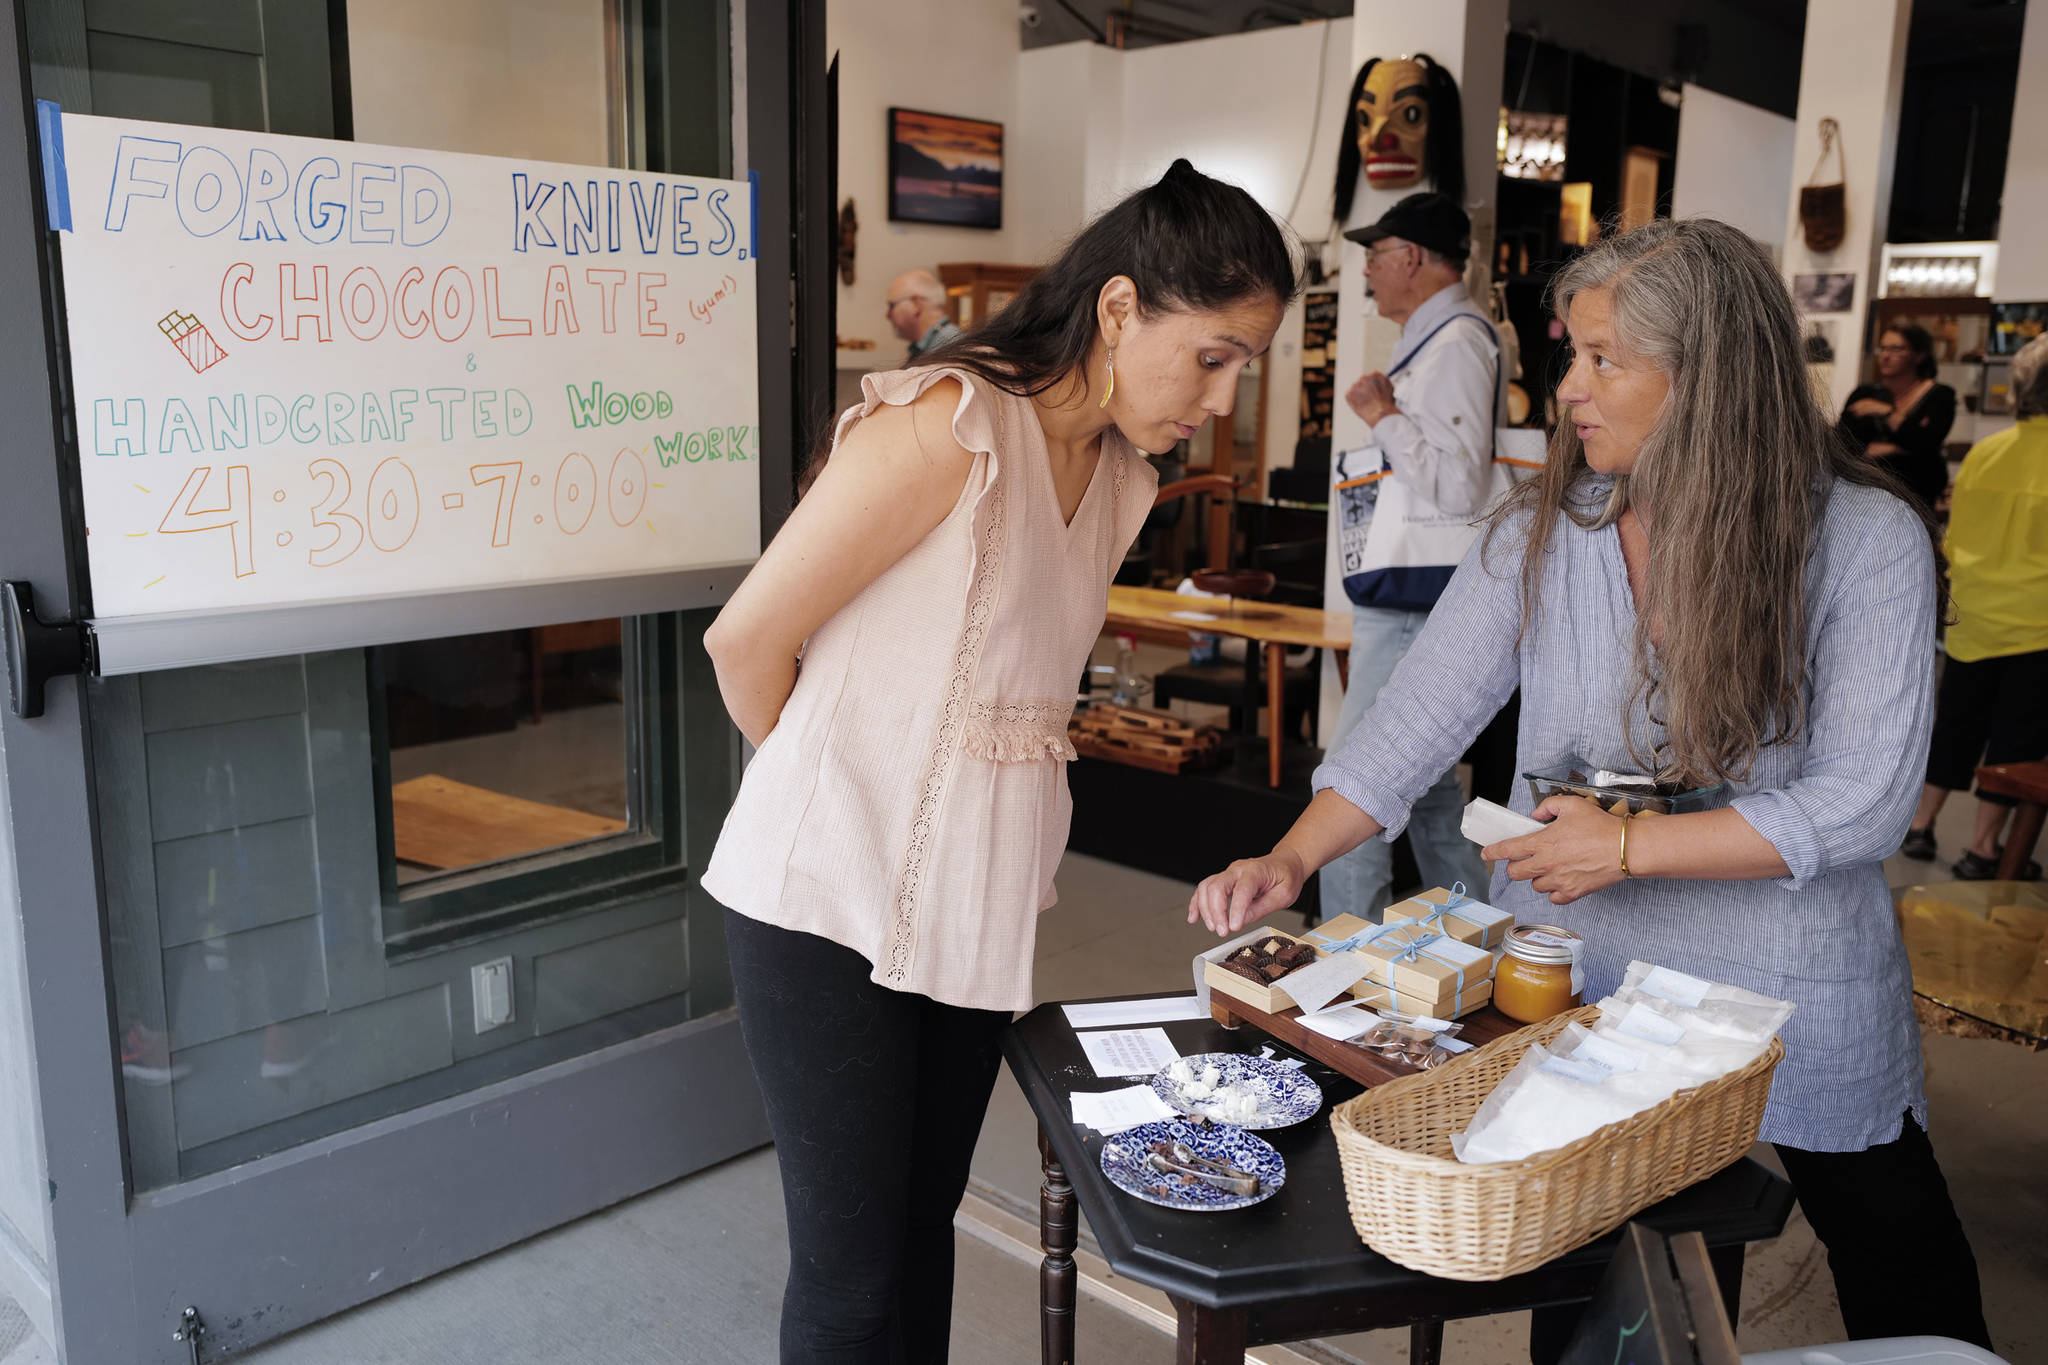 Marta Lastufka, right, owner of Sweet Song Chocolates, shows her wares to Elia Salinas during First Friday at Rainforest Designs on South Franklin Street on Friday, July 5, 2019. Lastufka was one of three featured artists at the local artisans shop. Wood worker Henry Webb and knife maker Liam Penn were also featured. (Michael Penn | Juneau Empire)